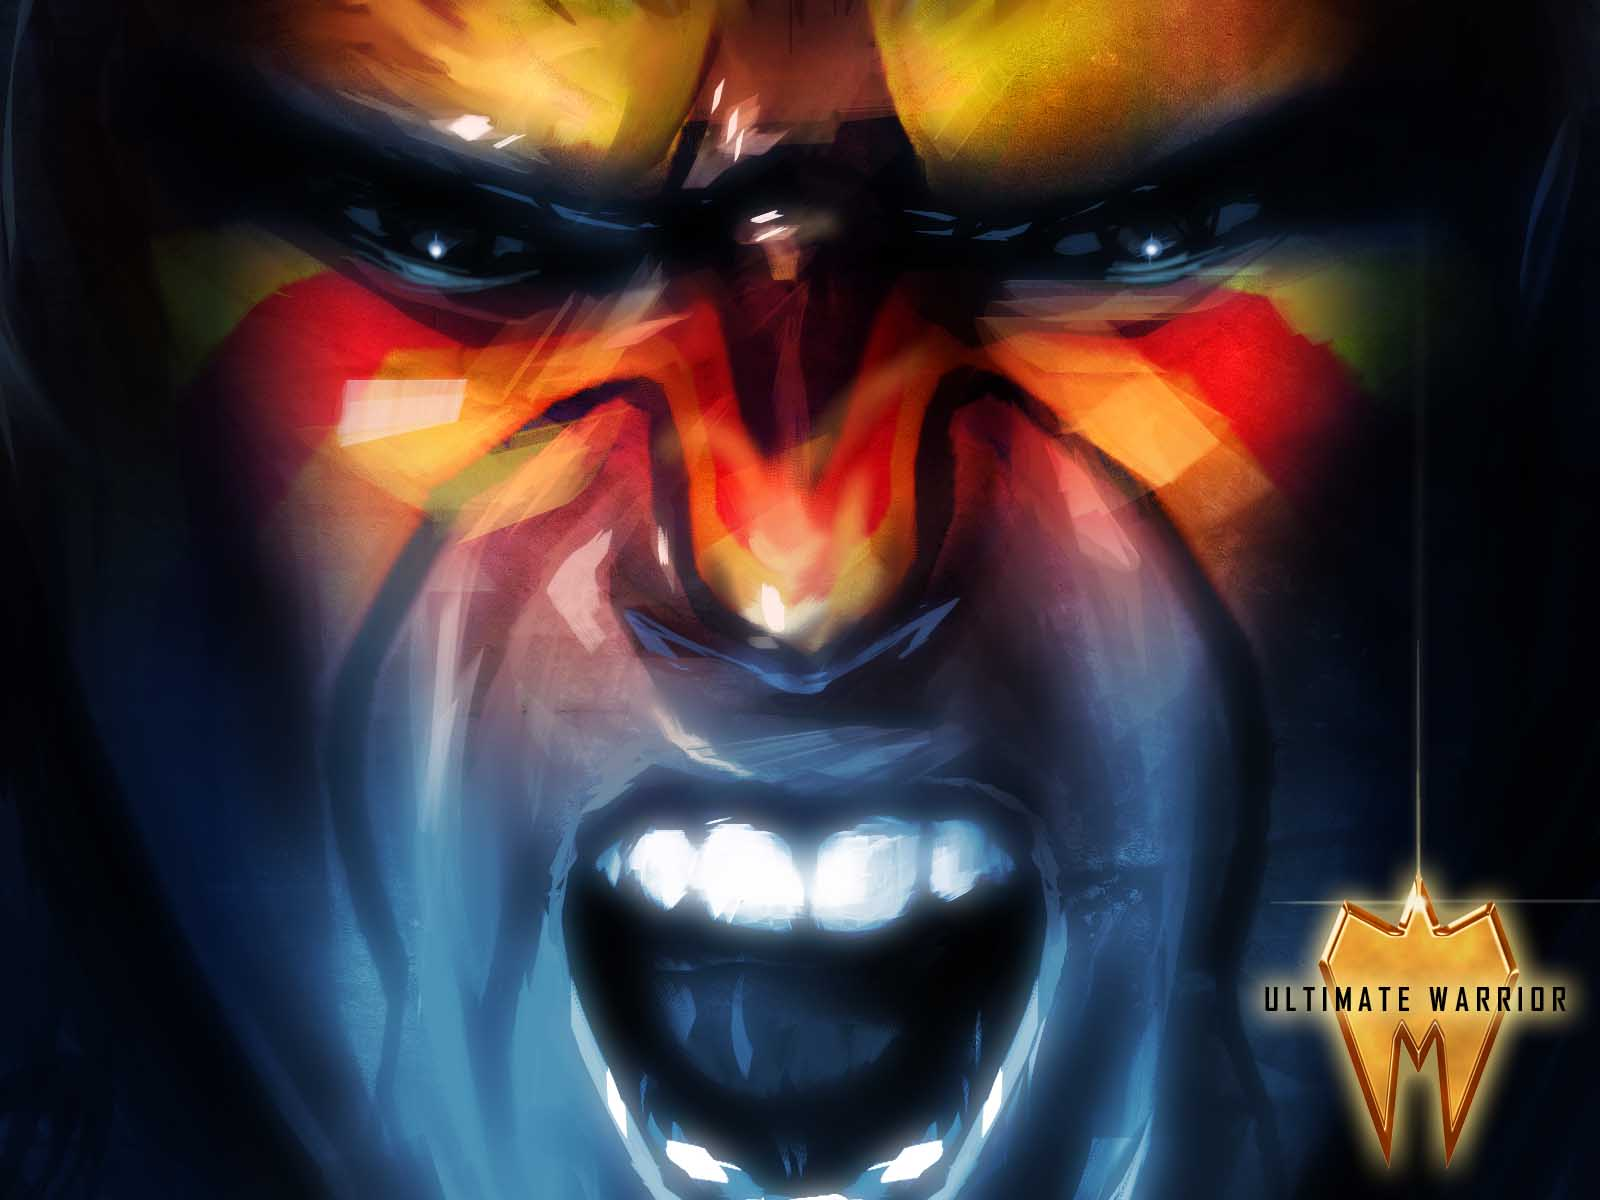 46 Ultimate Warrior Iphone Wallpaper On Wallpapersafari